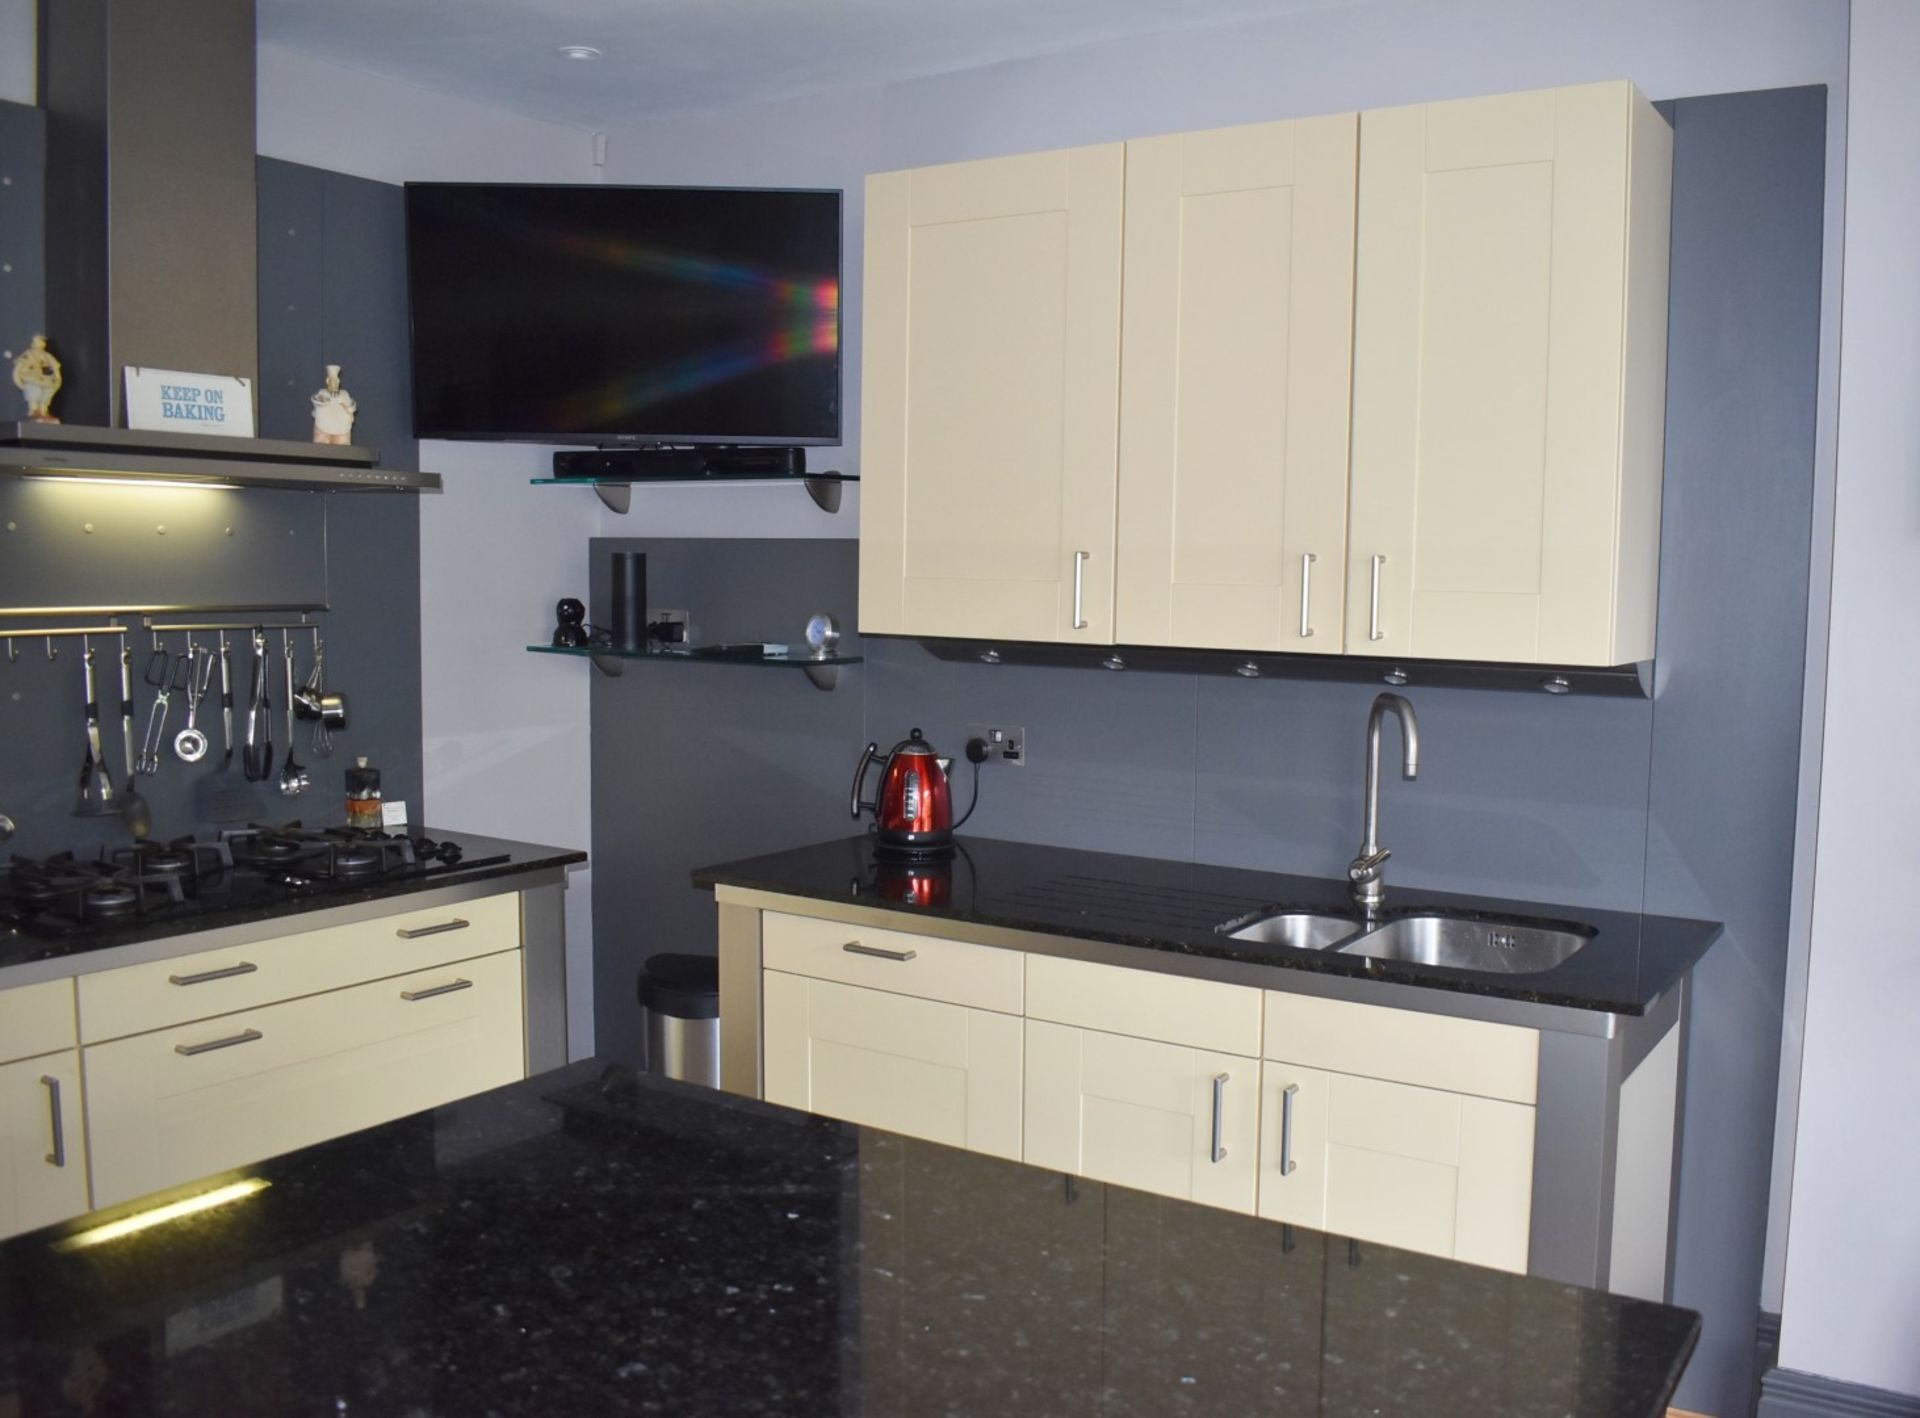 1 x SieMatic Contemporary Fitted Kitchen With Appliances - Features Shaker Style Doors, Central - Image 96 of 96